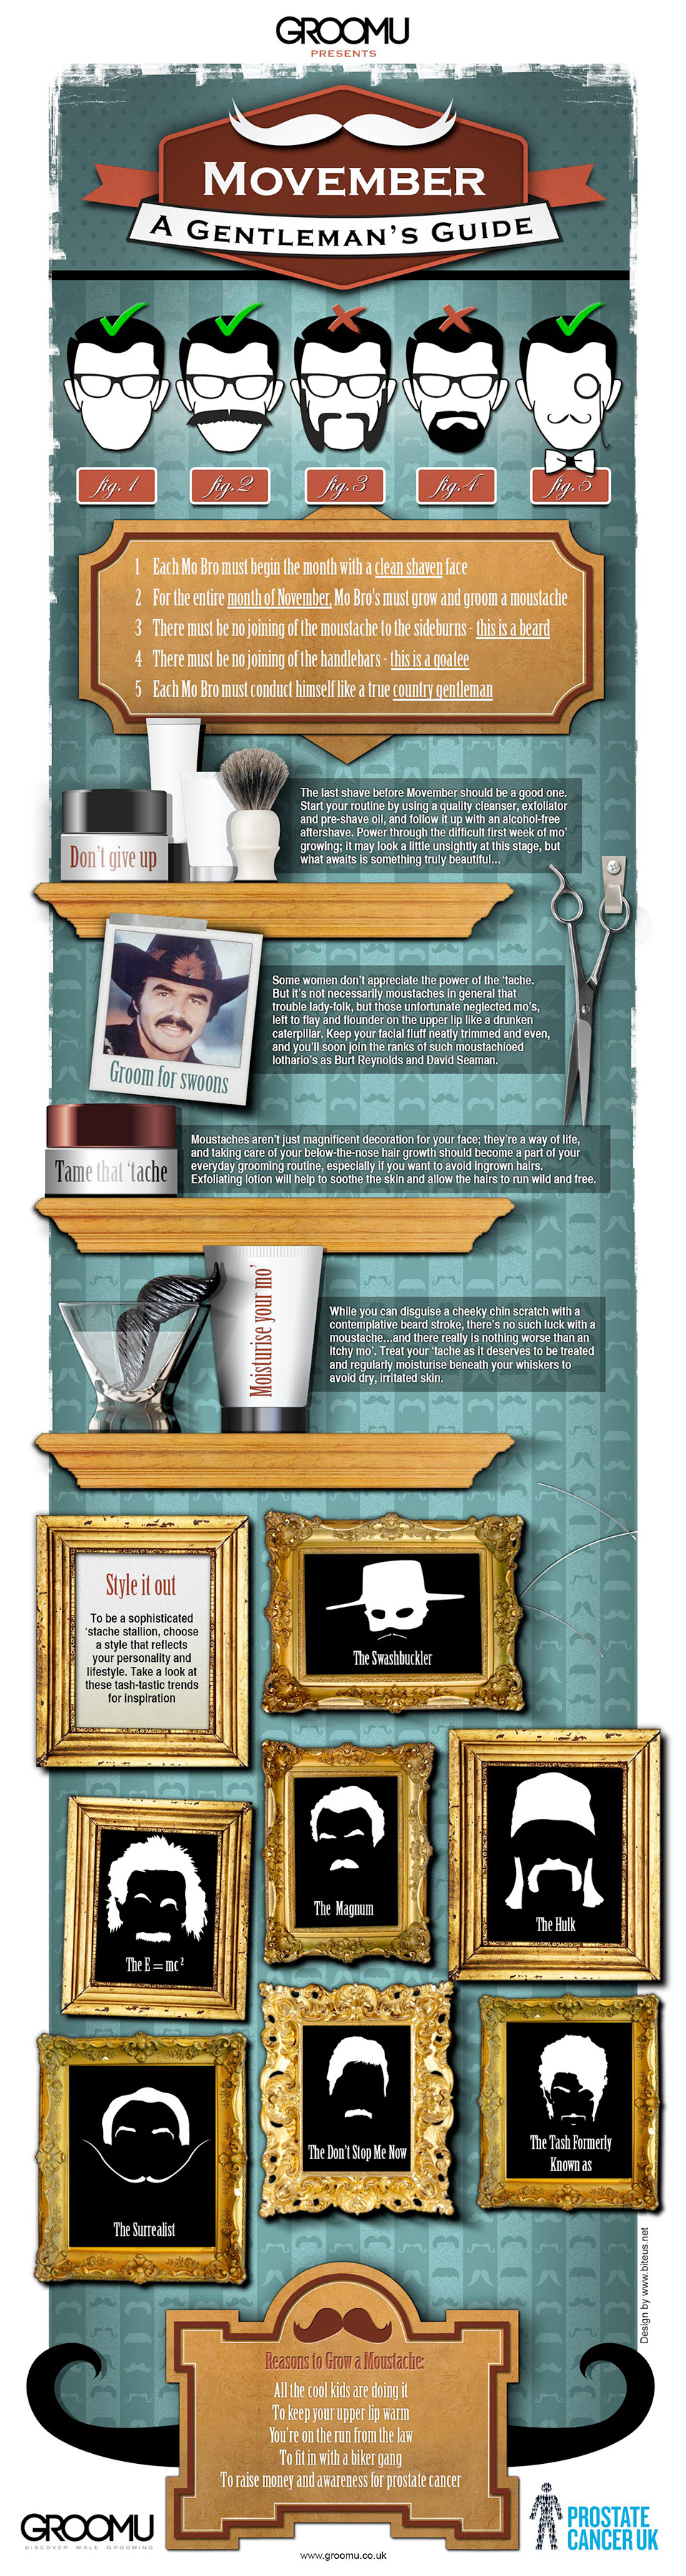 GroomU – Movember: A Gentleman's Guide